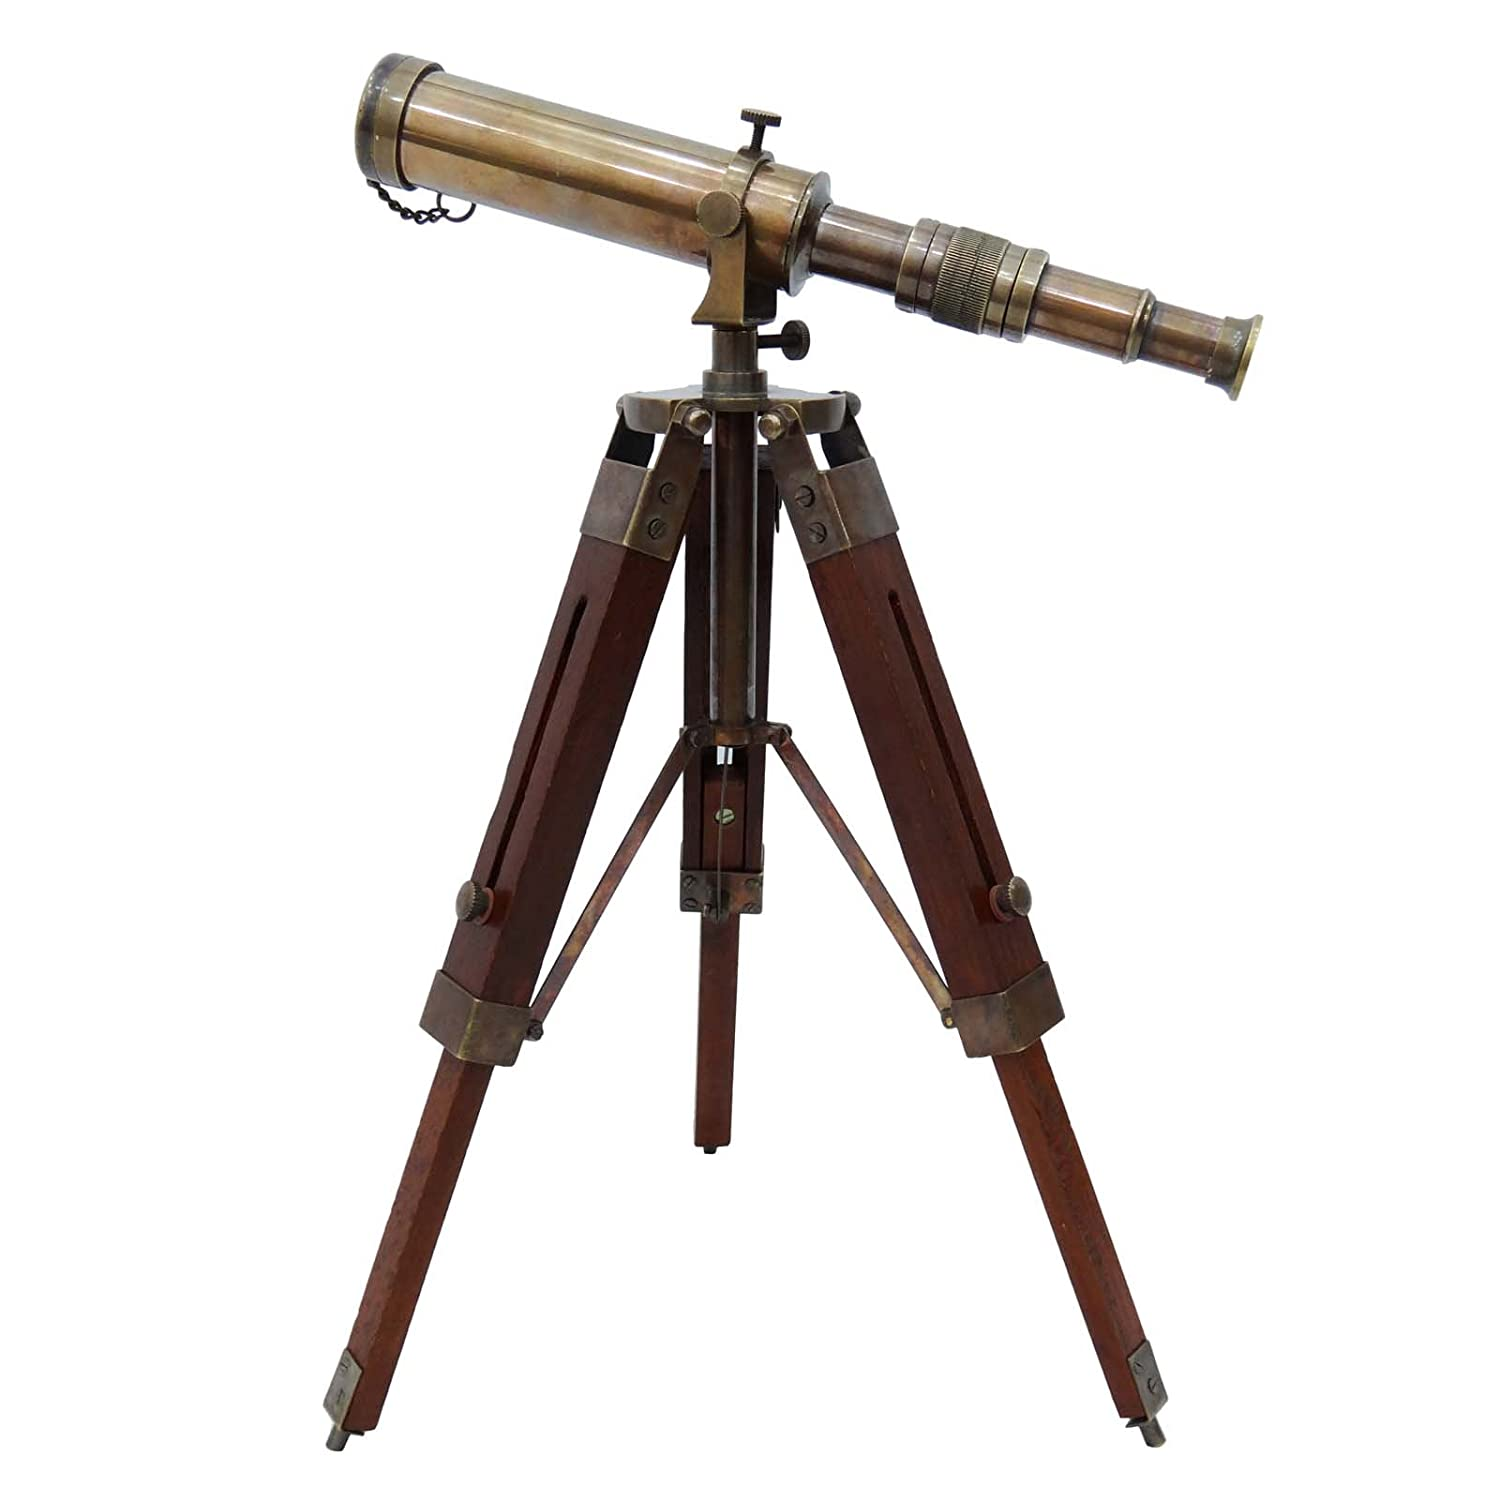 Telescope Brass Pirate Solid Spyglass Wood Decorative Stand Indian Nautical ibaexports